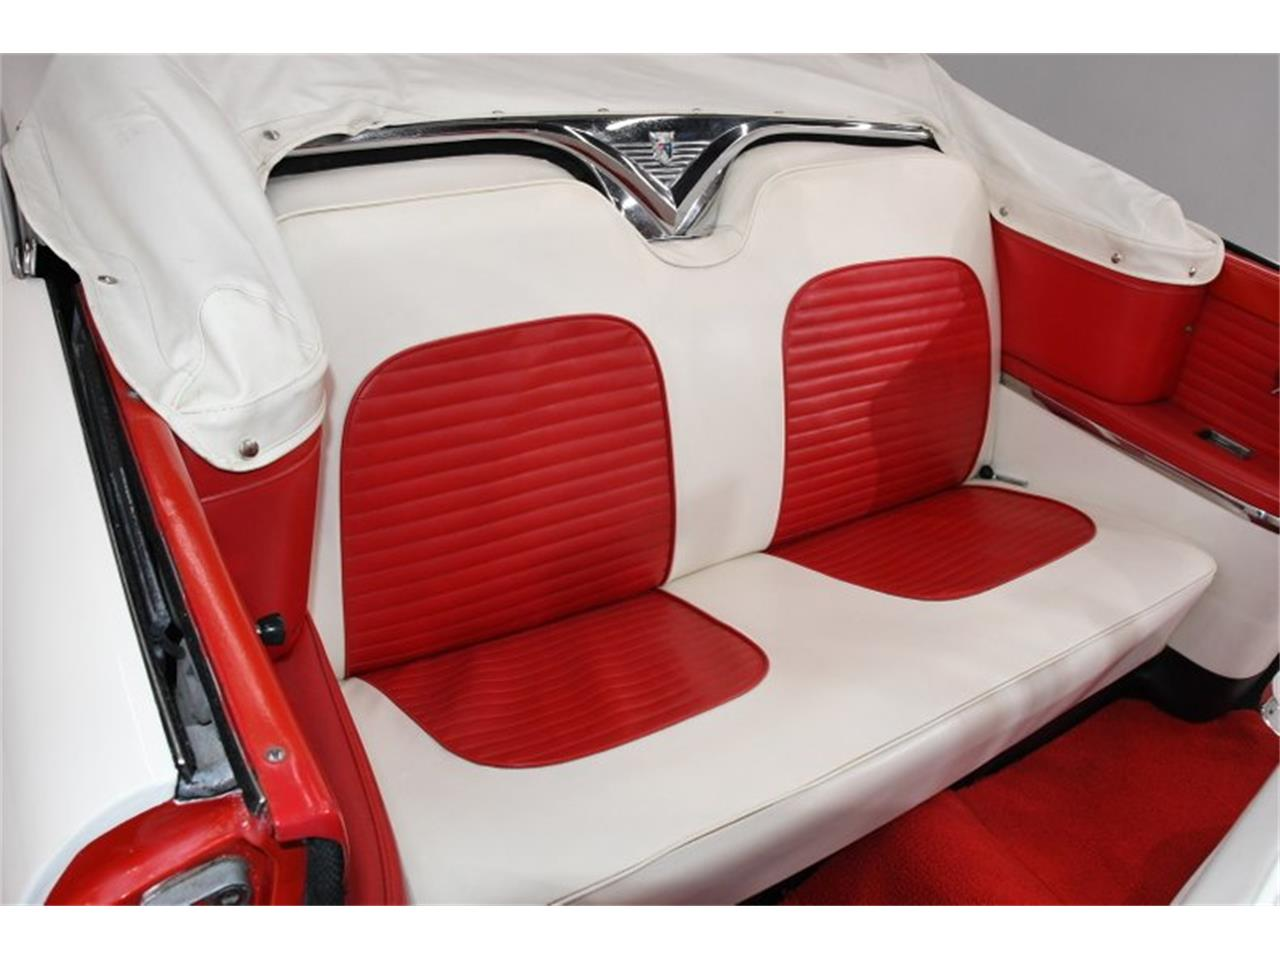 Large Picture of Classic '55 Ford Fairlane - $45,998.00 - PM6P